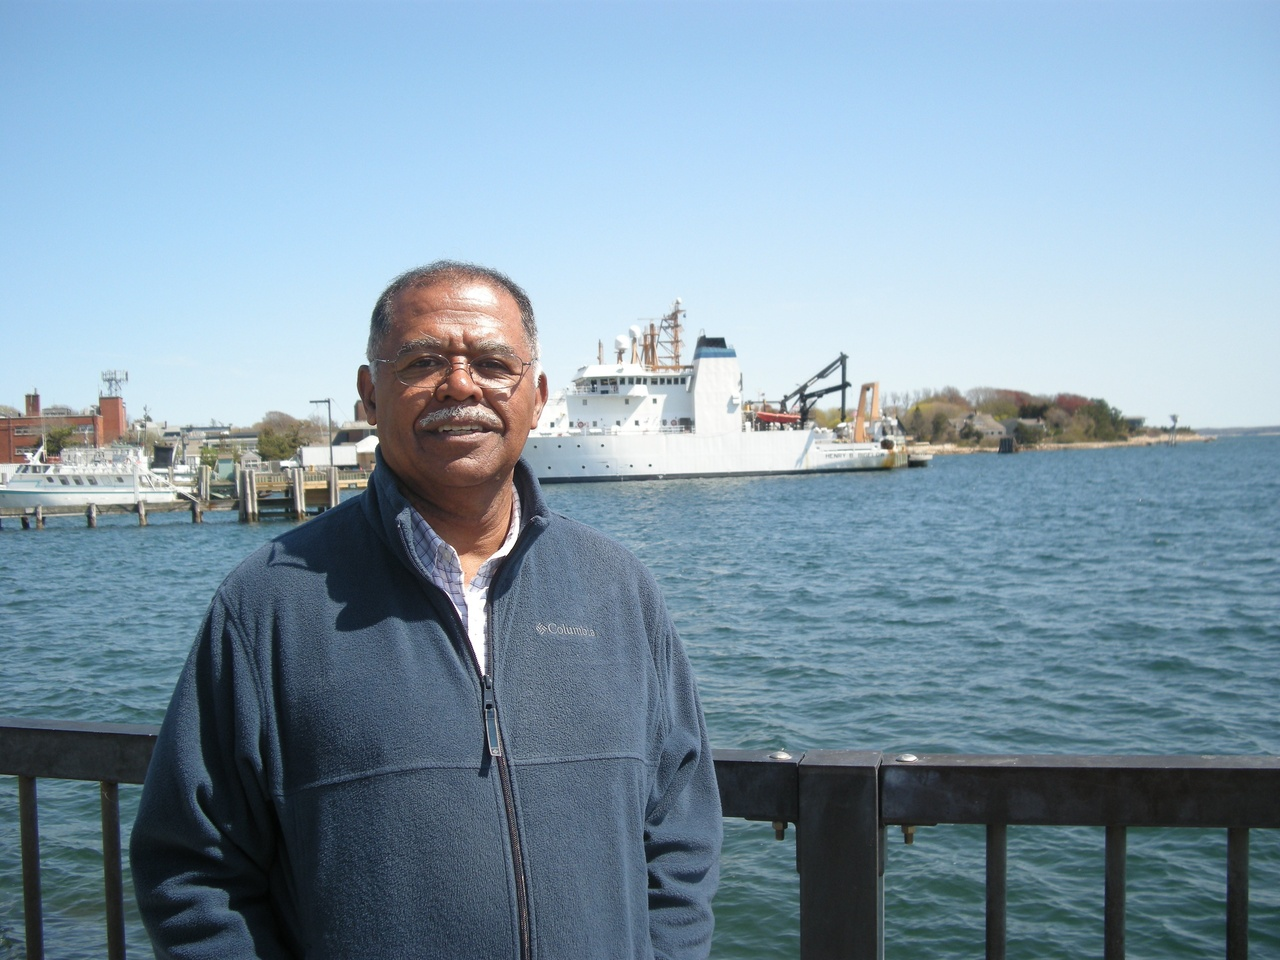 Ambrose Jearld Jr. stands by the water with the NOAA Ship Henry Bigelow in the background